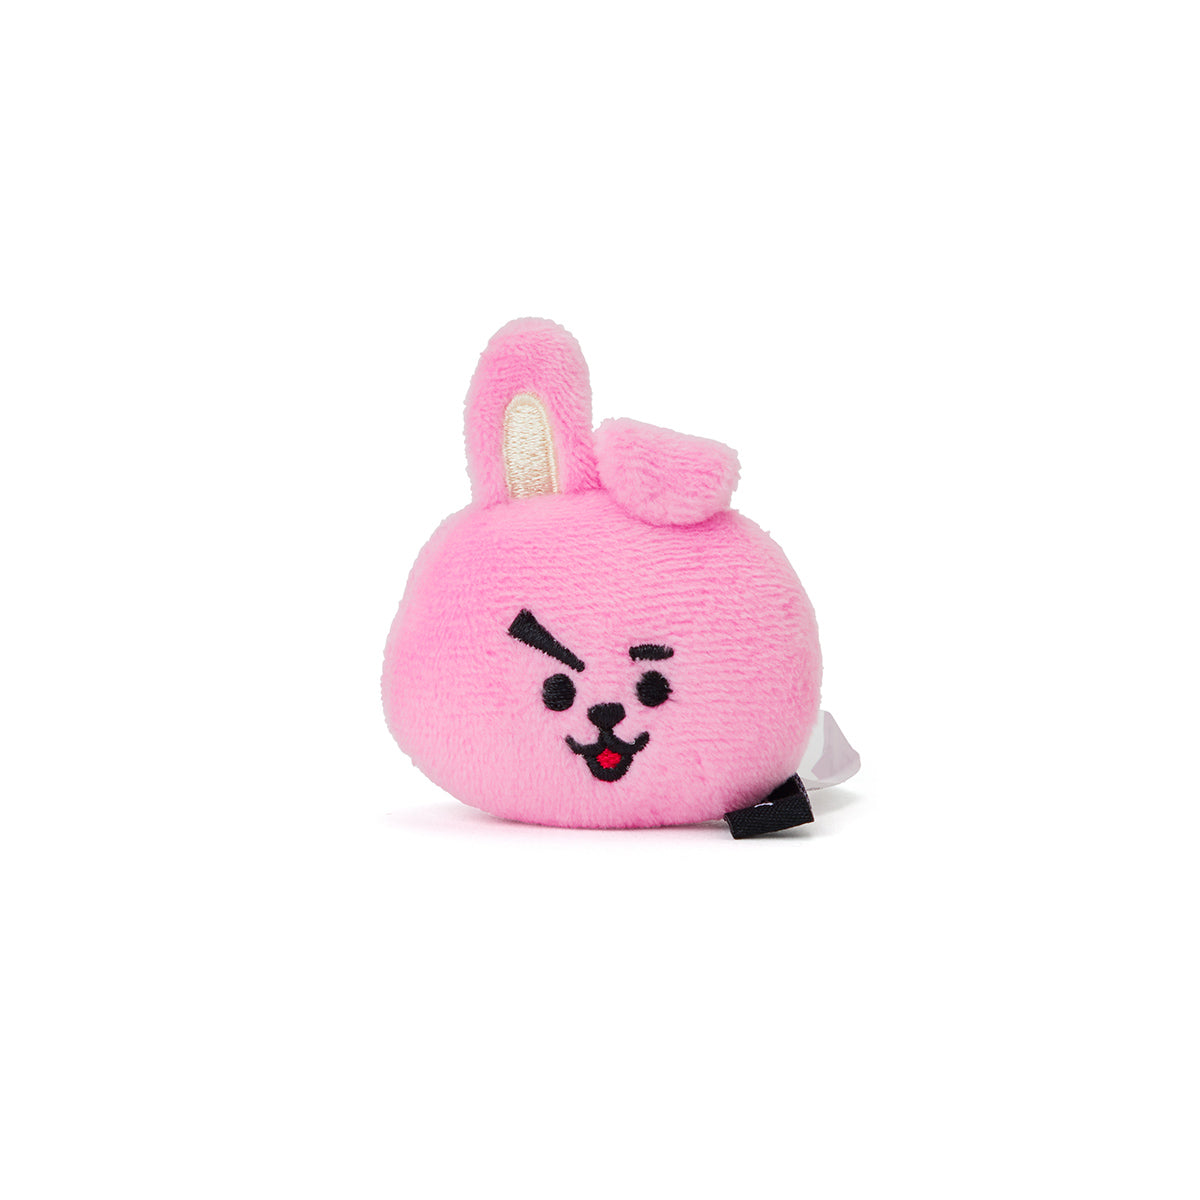 BT21 COOKY Plush Face Magnet